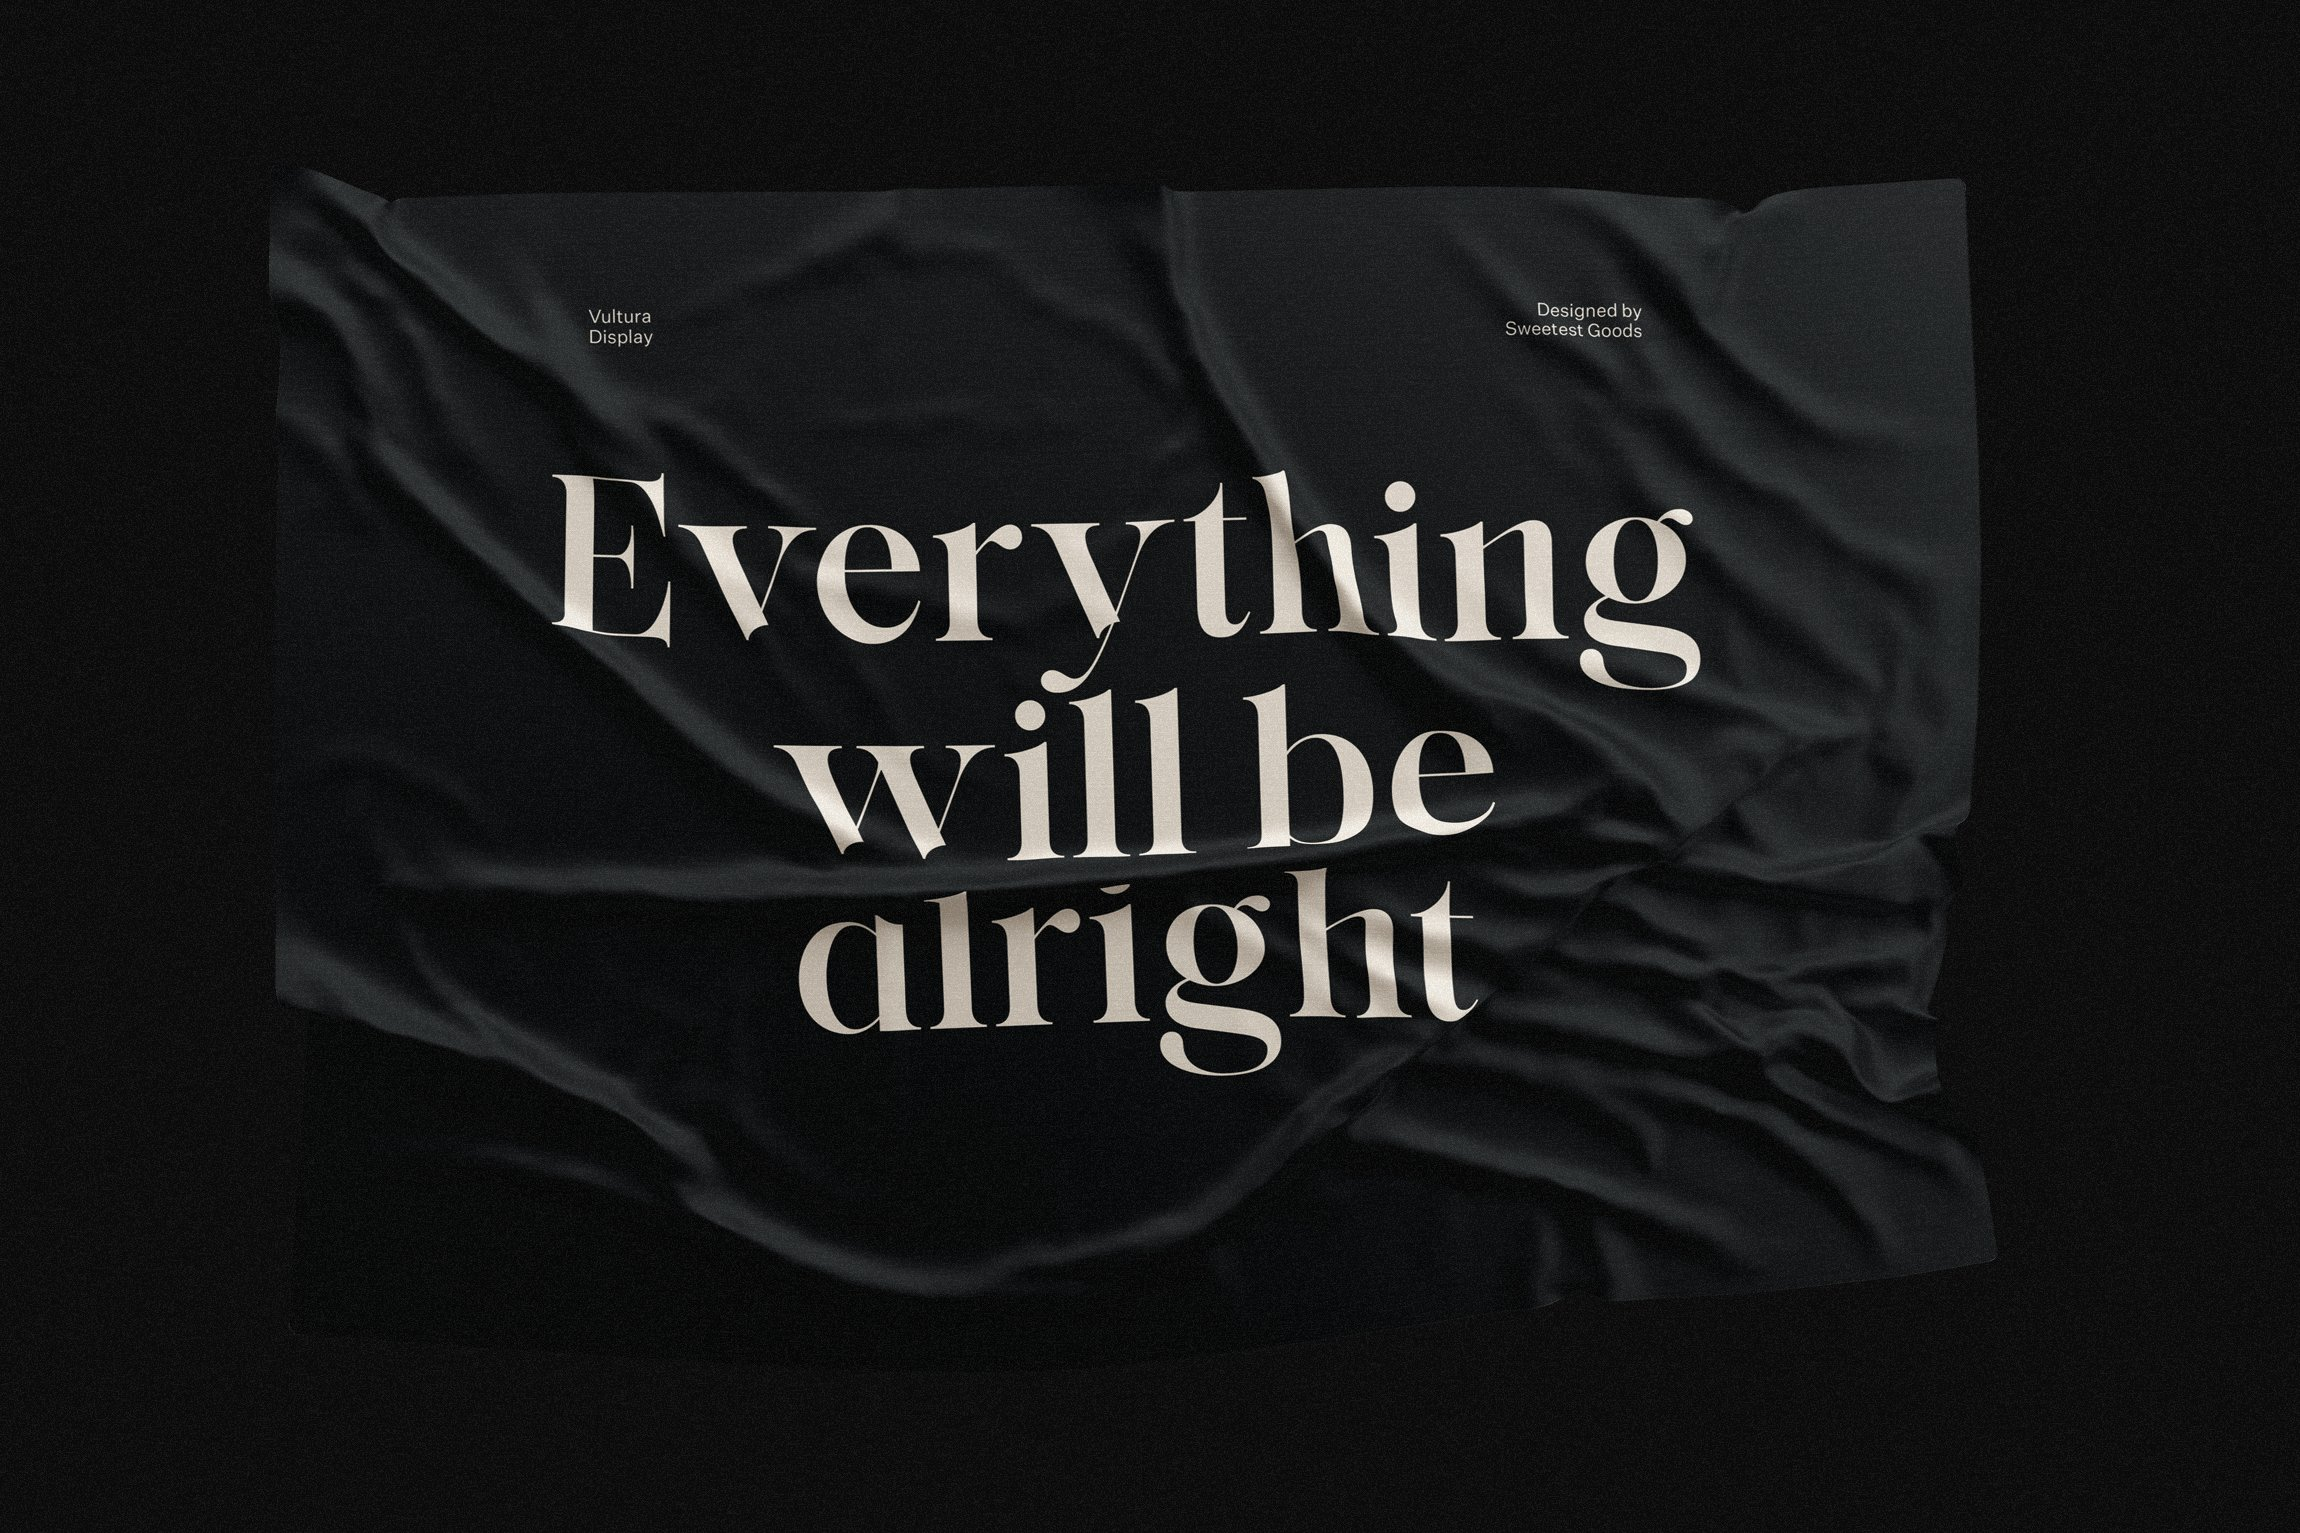 vultura font free logos sweetest goods business quote everything alright 11